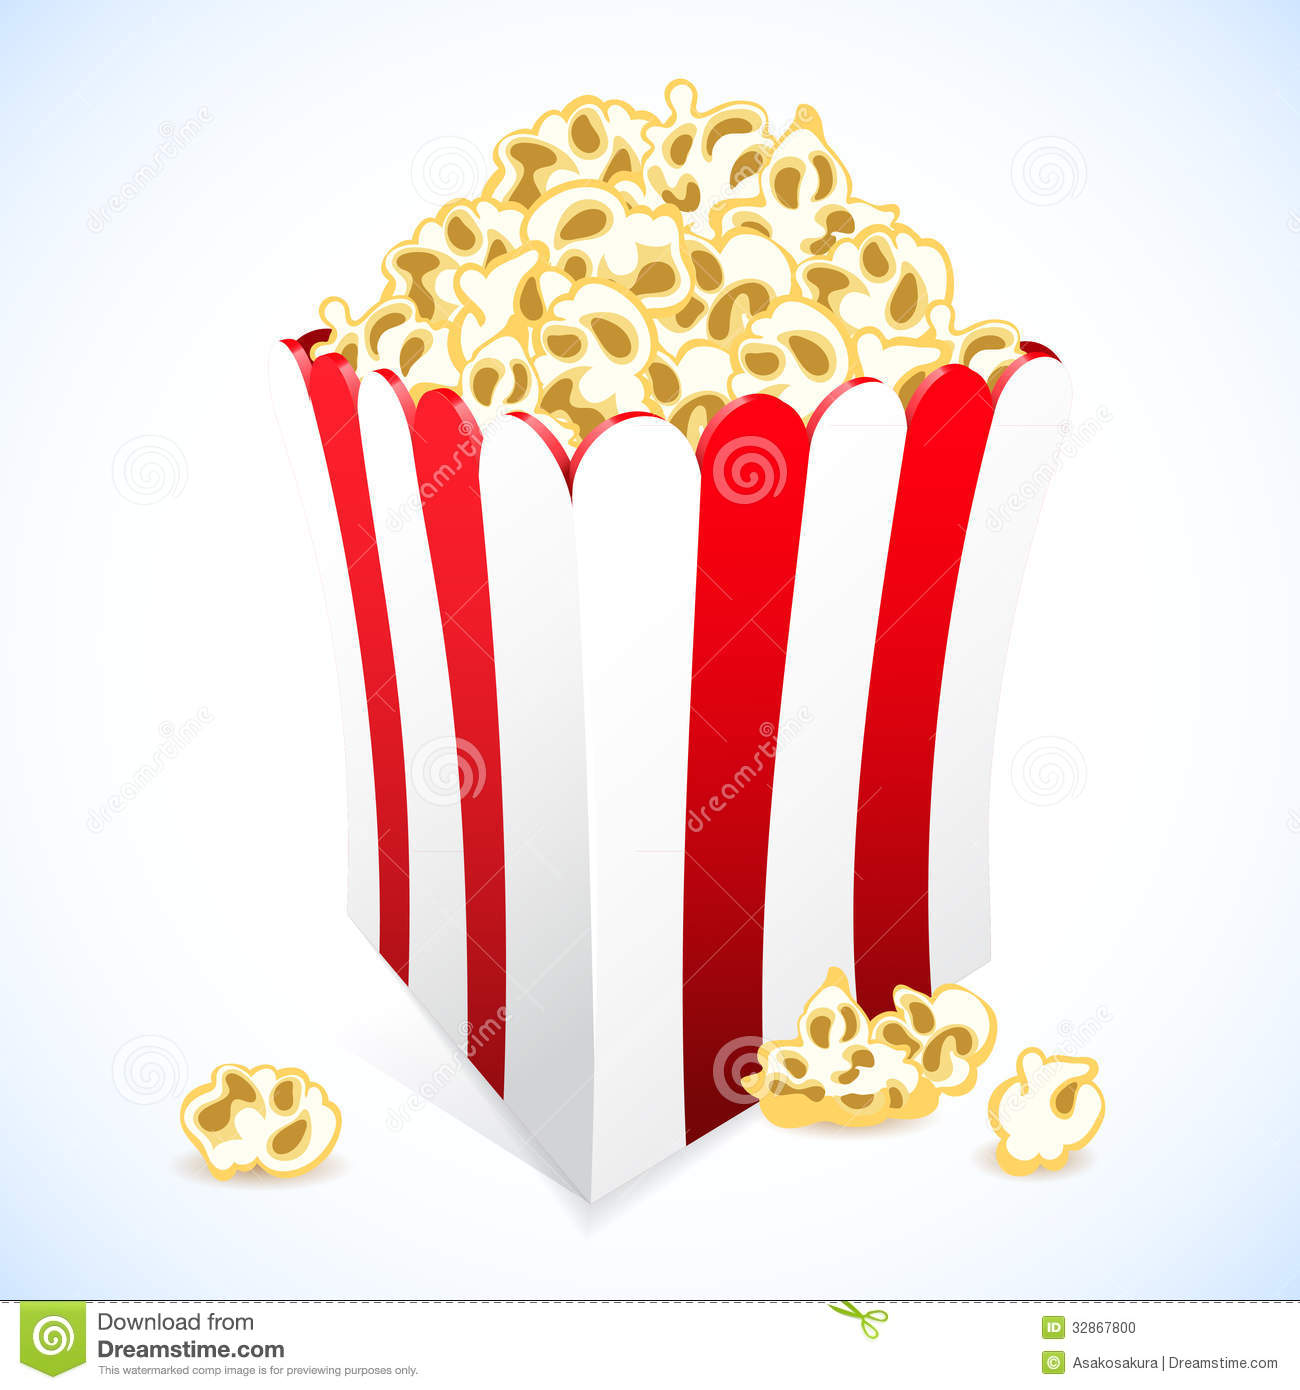 Movie Popcorn Box Icon popcorn cardboard box for